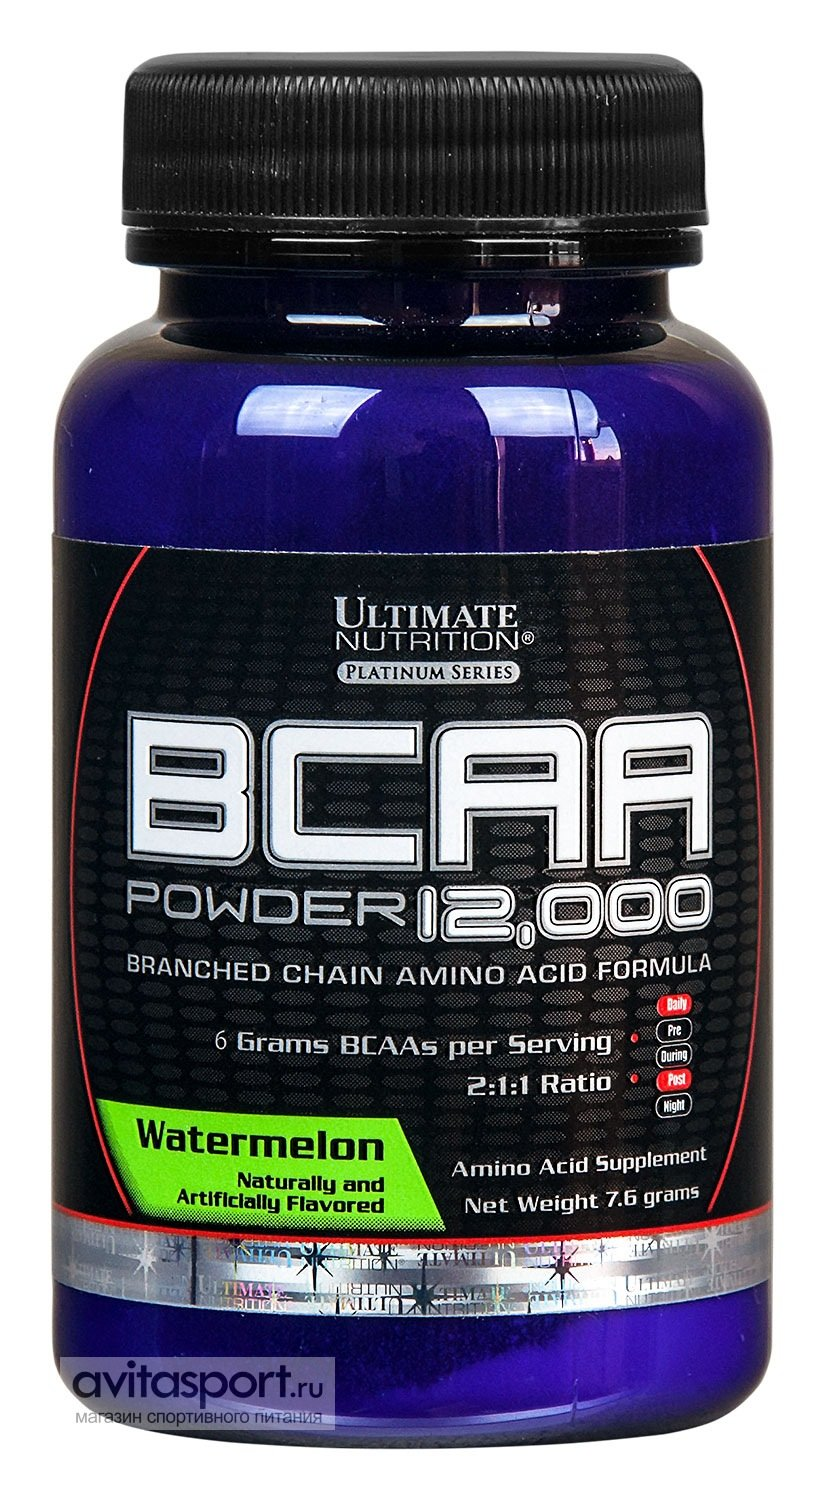 Ultimate Nutrition BCAA 12000 Flavored • 7.6 г • Watermelon / Арбуз